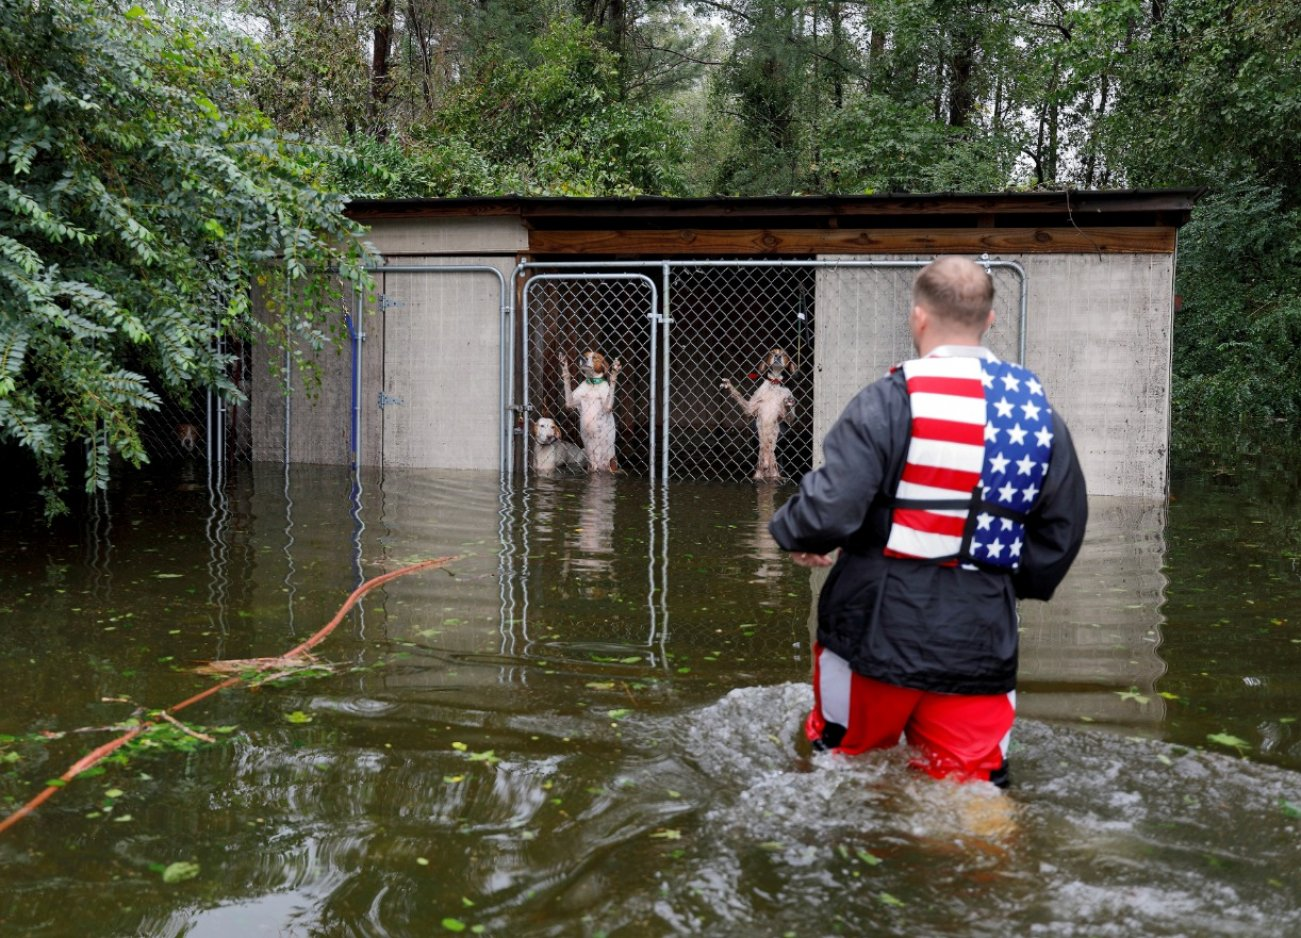 If America Is Serious About Its National Security, It Should Focus on Climate Change